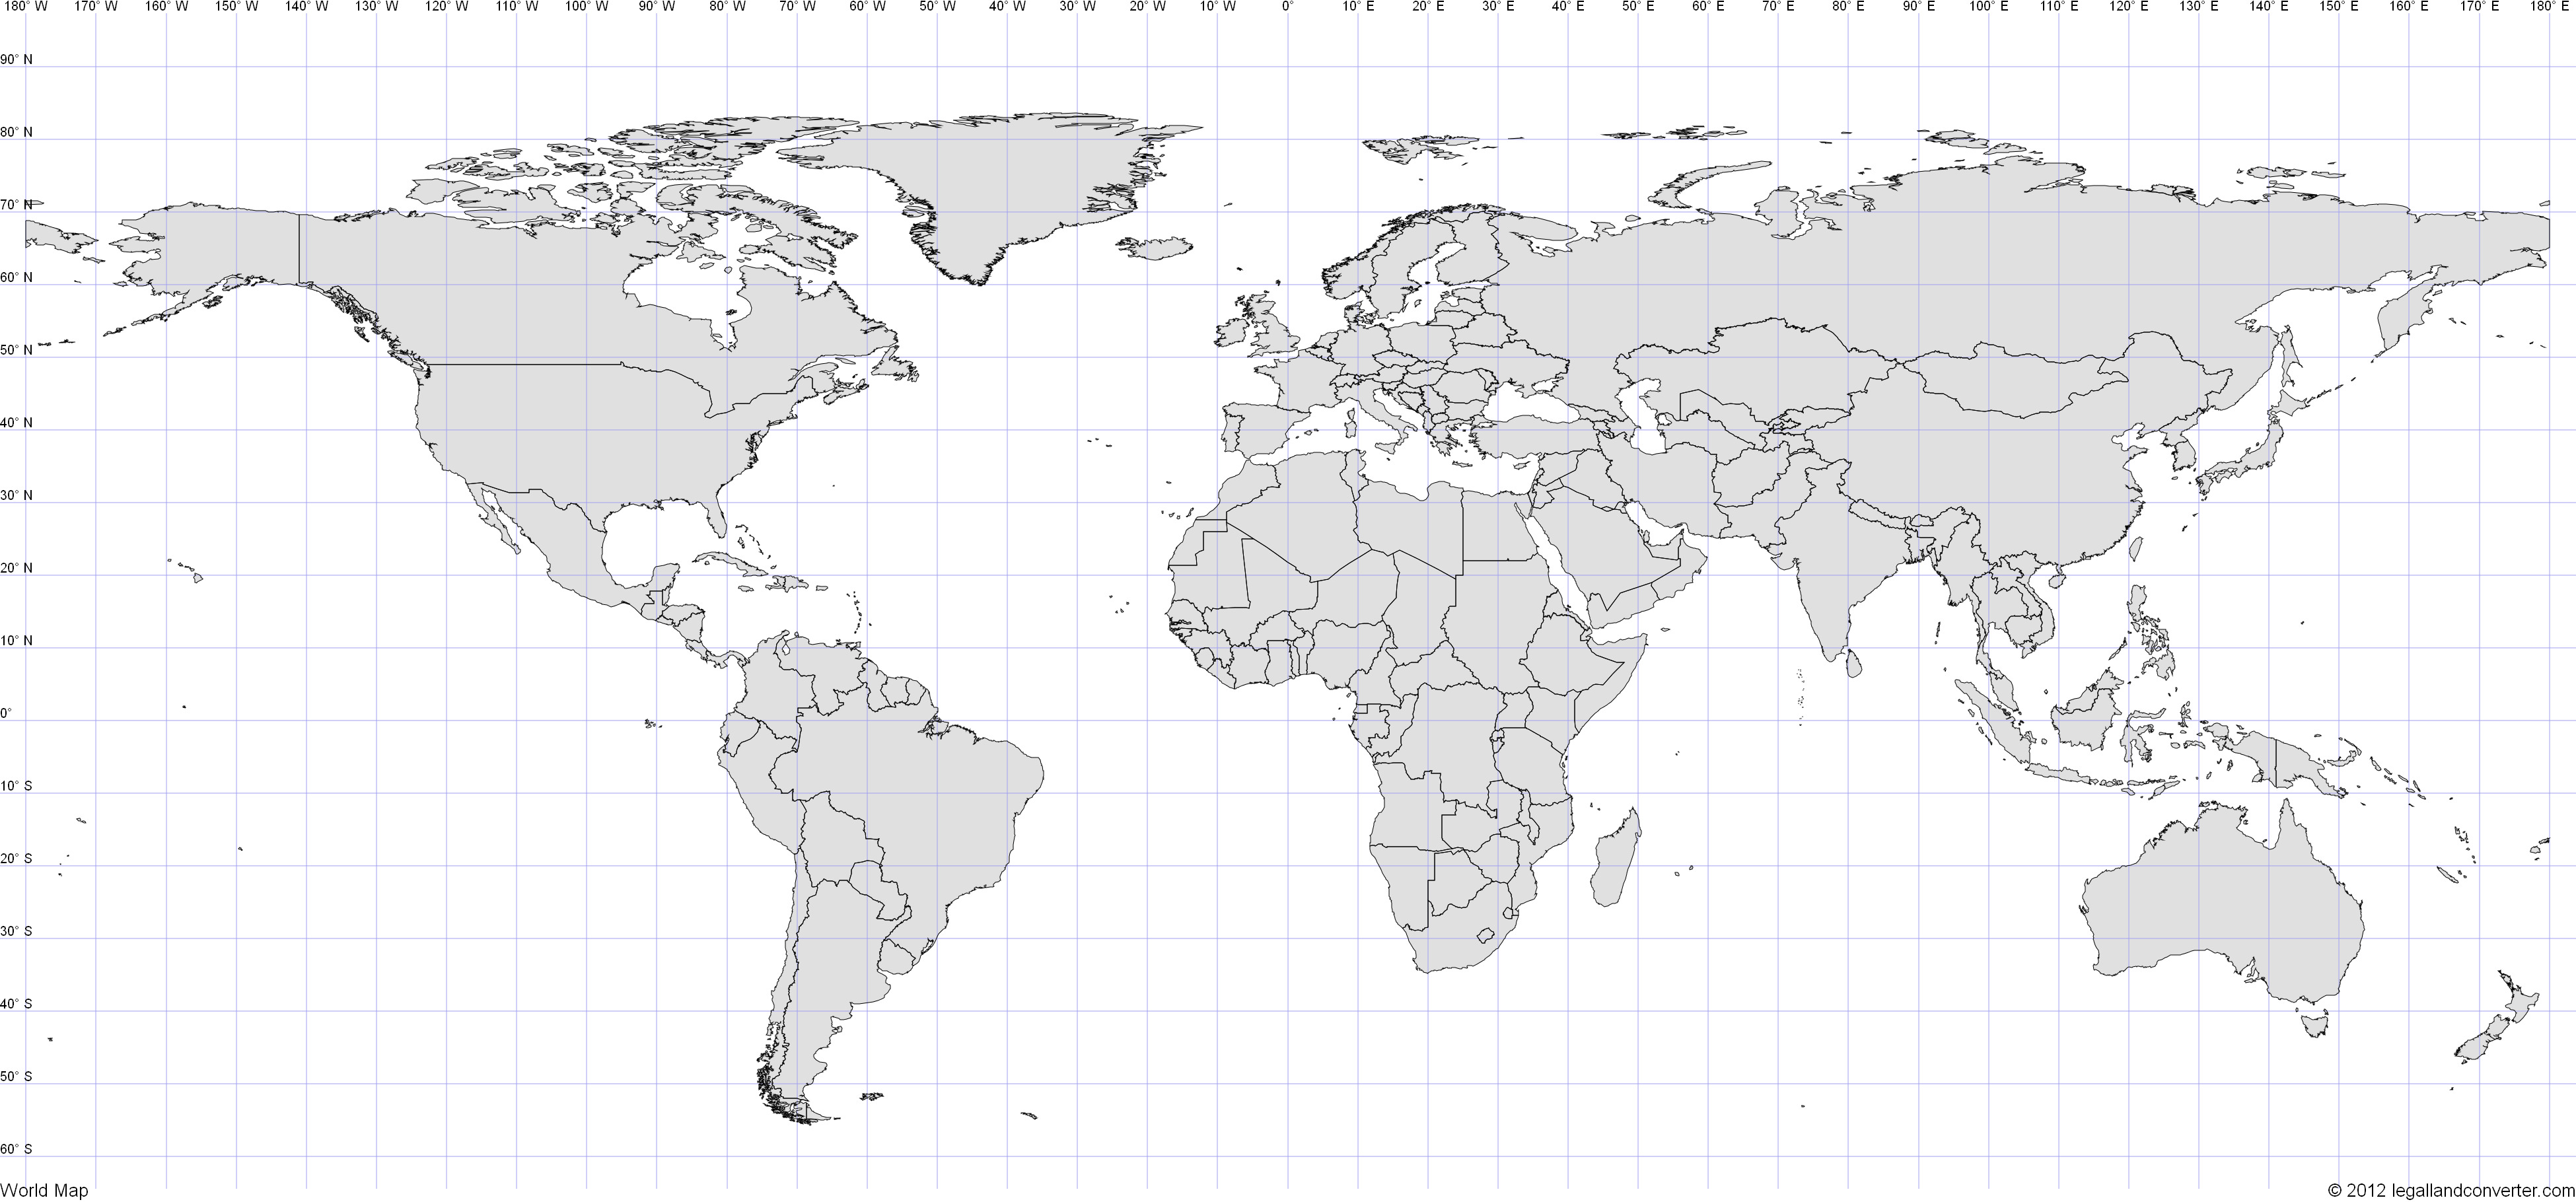 World Map with Latitude and Longitude